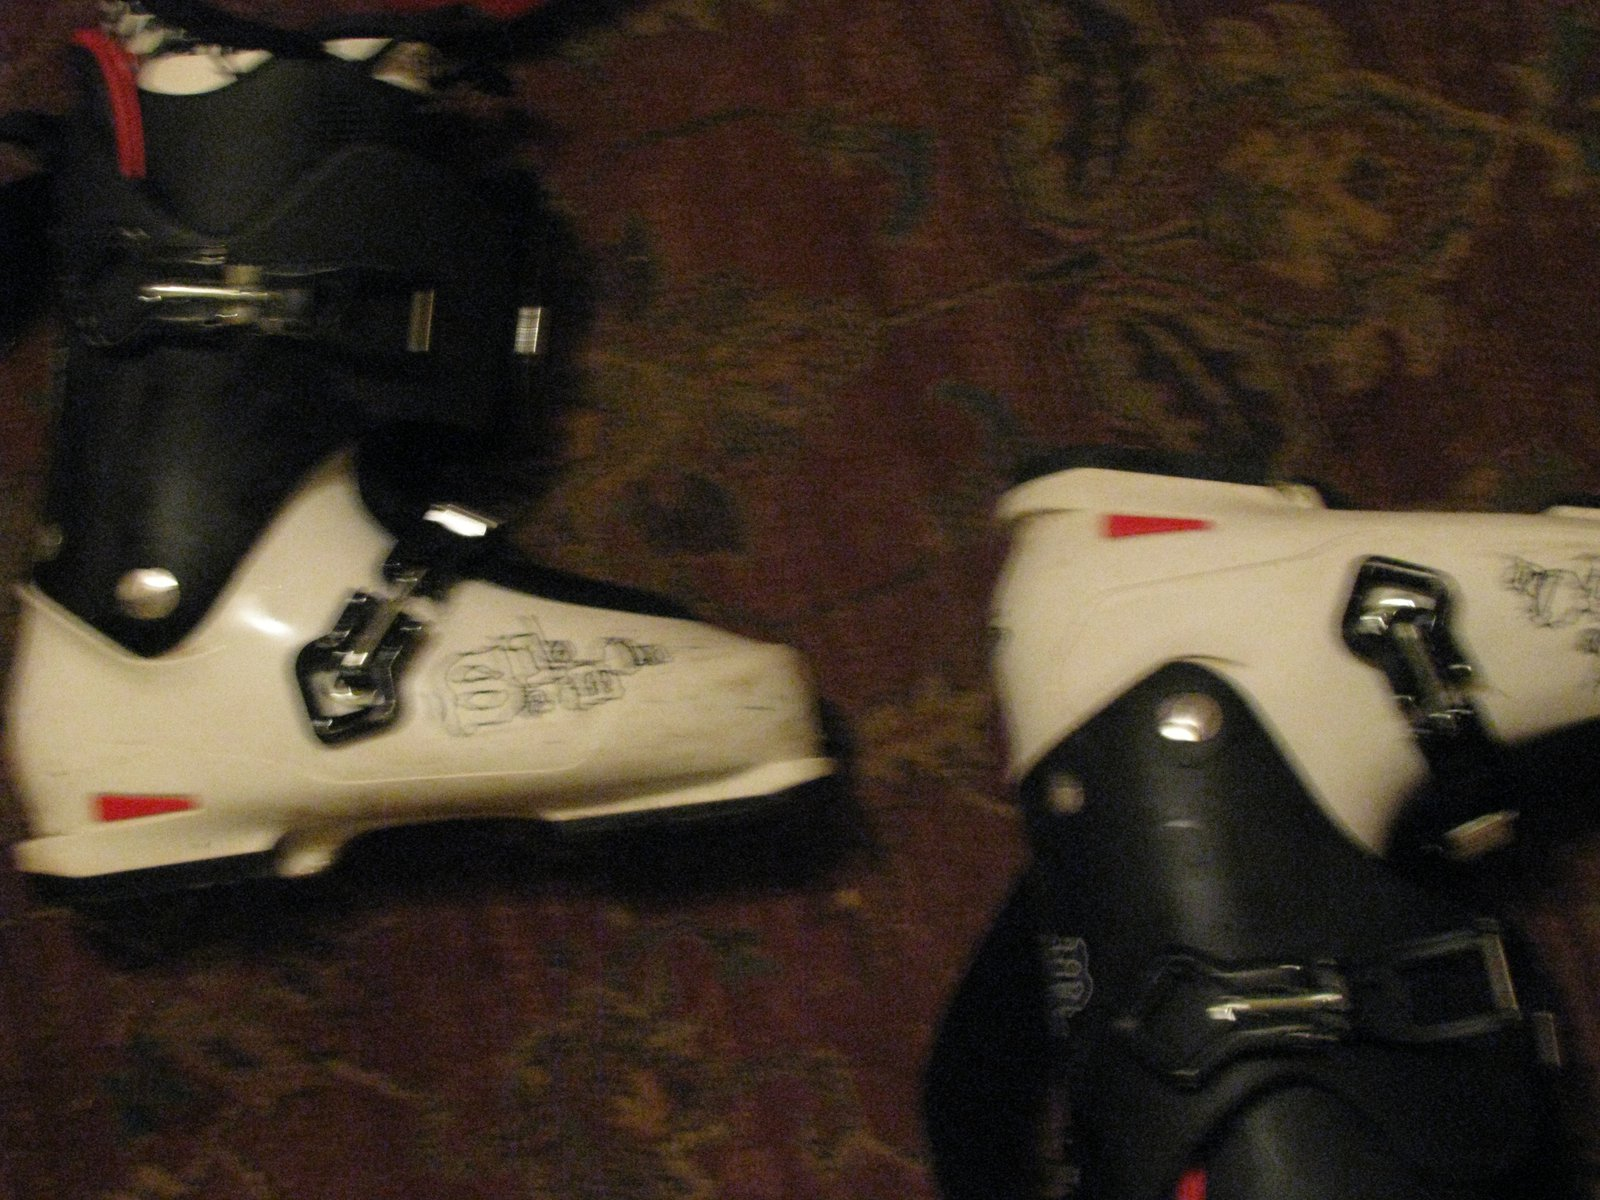 The boots with out flash kinda dark